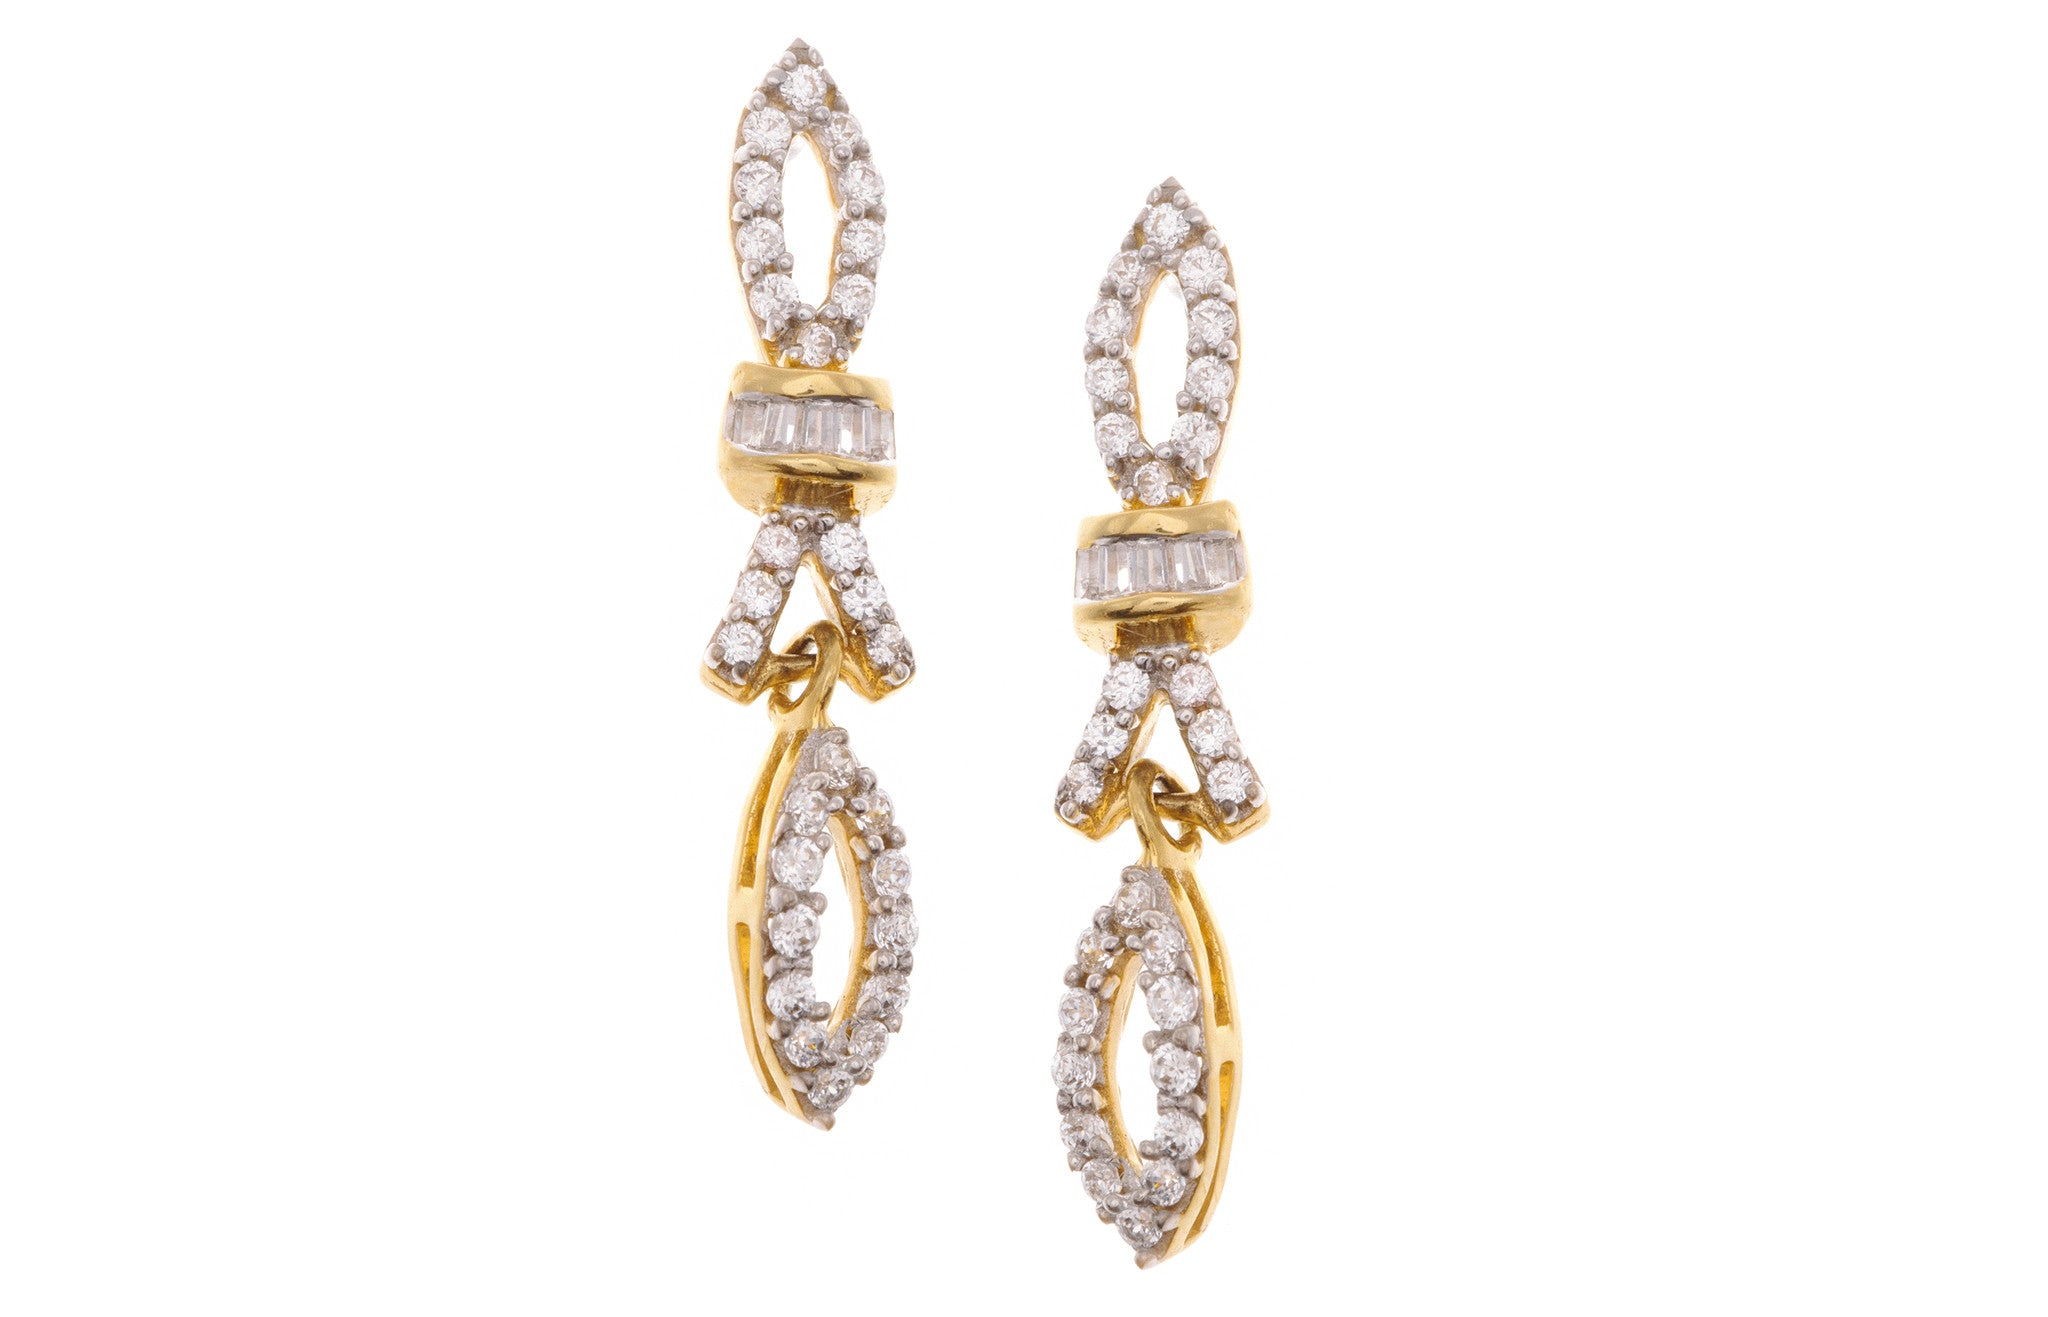 22ct Yellow Gold Cubic Zirconia Mangal Sutra & Earring Set, Minar Jewellers - 7